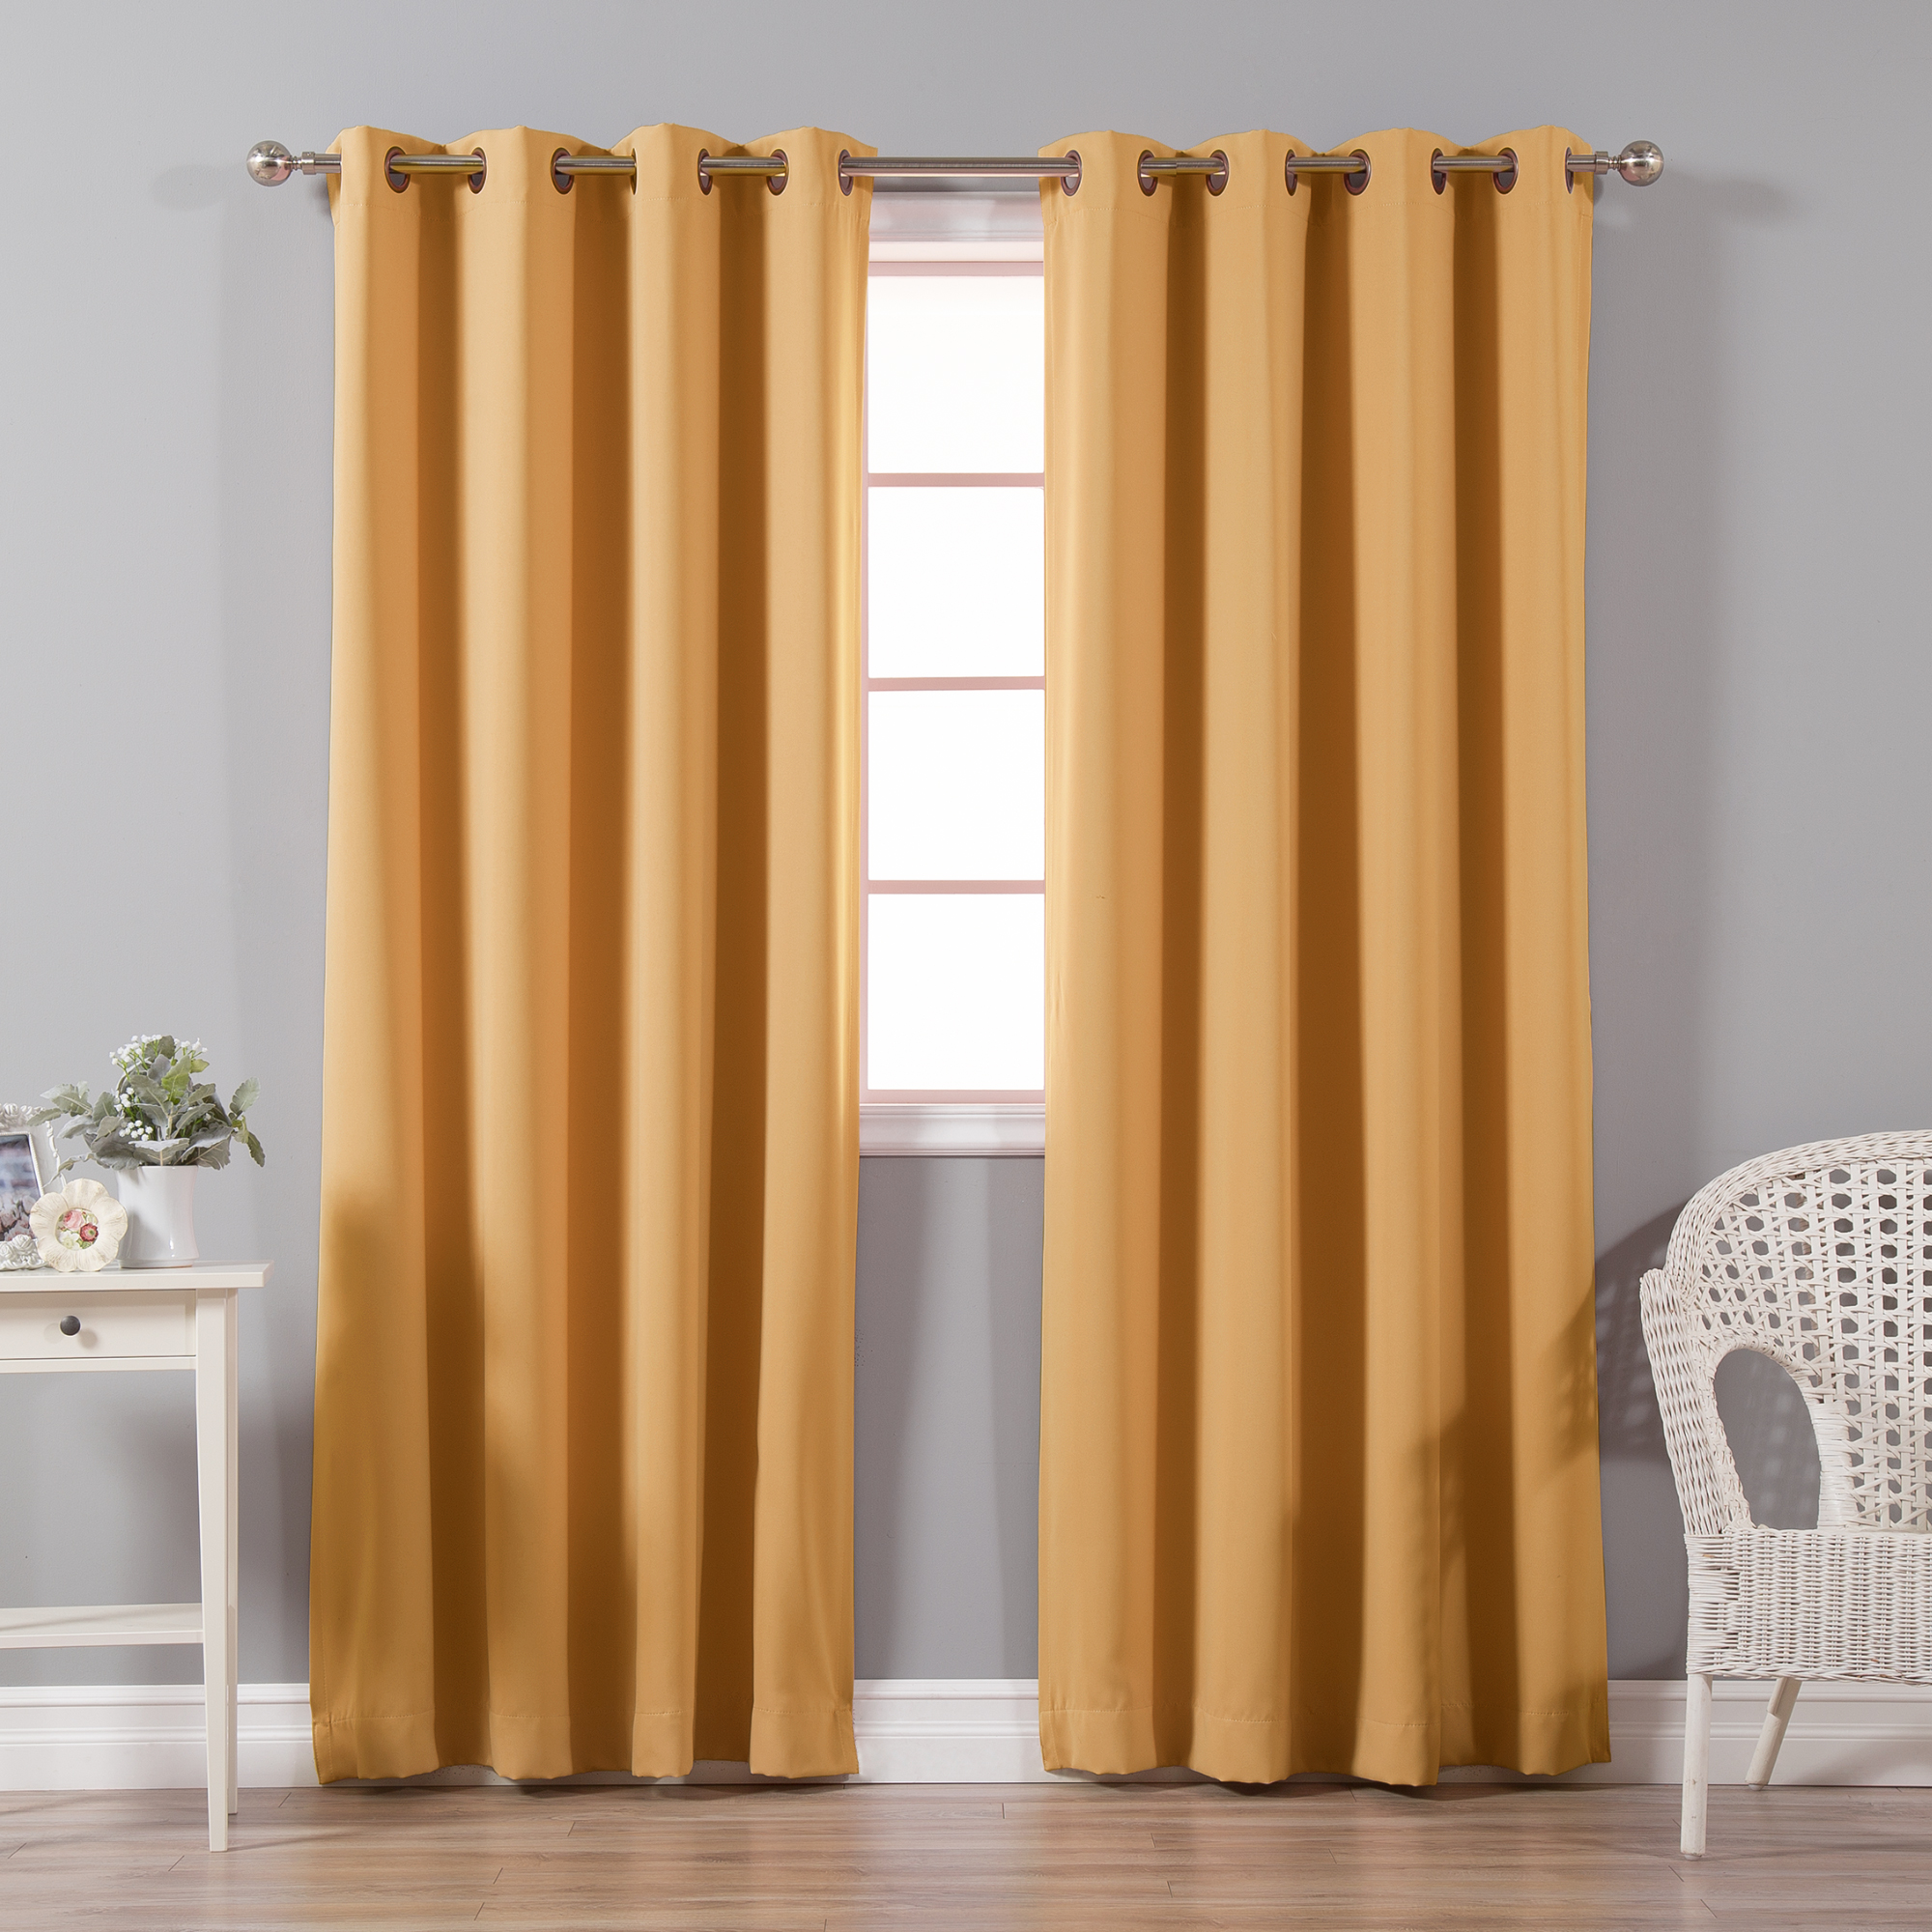 Quality Home Basic Thermal Blackout Curtains   Antique Bronze Grommet Top    Brick (Set Of